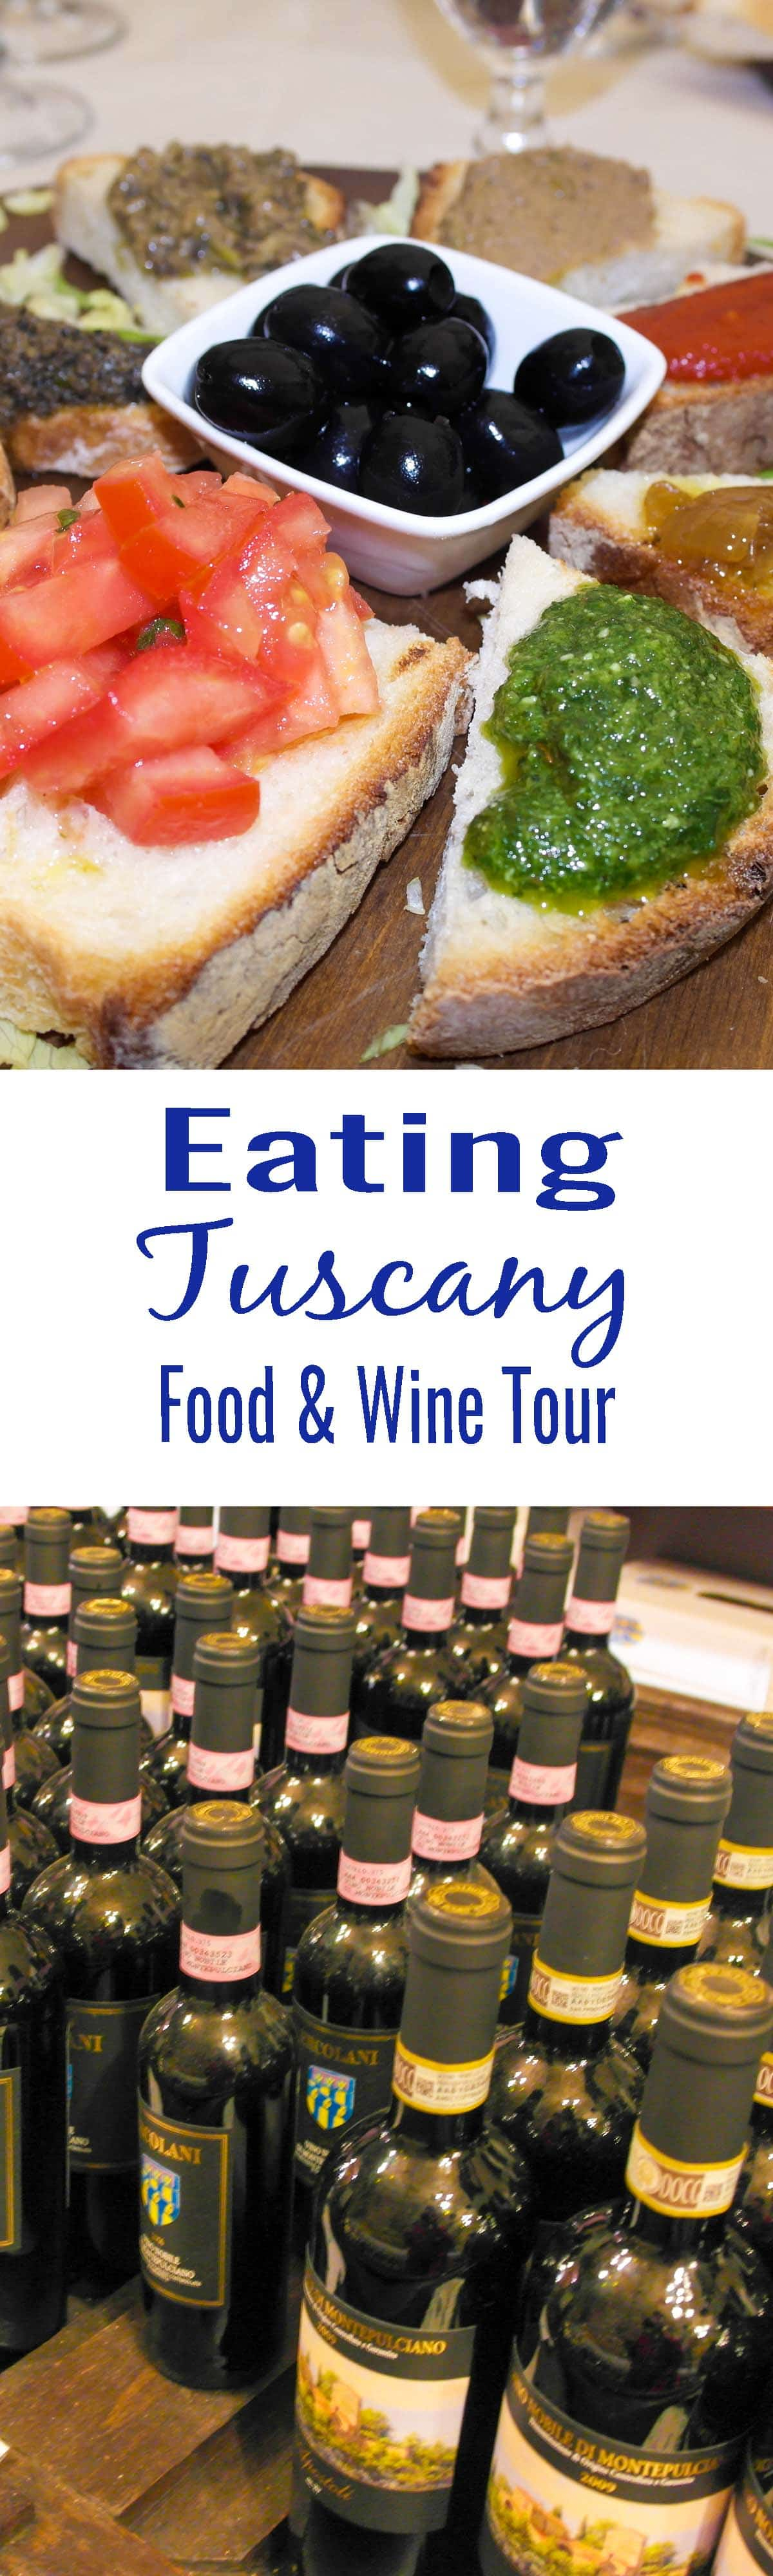 Savoring slow cooking and the slow life on a weeklong Tuscany Food and Wine Tour. The perfect restoration for the hungry soul!